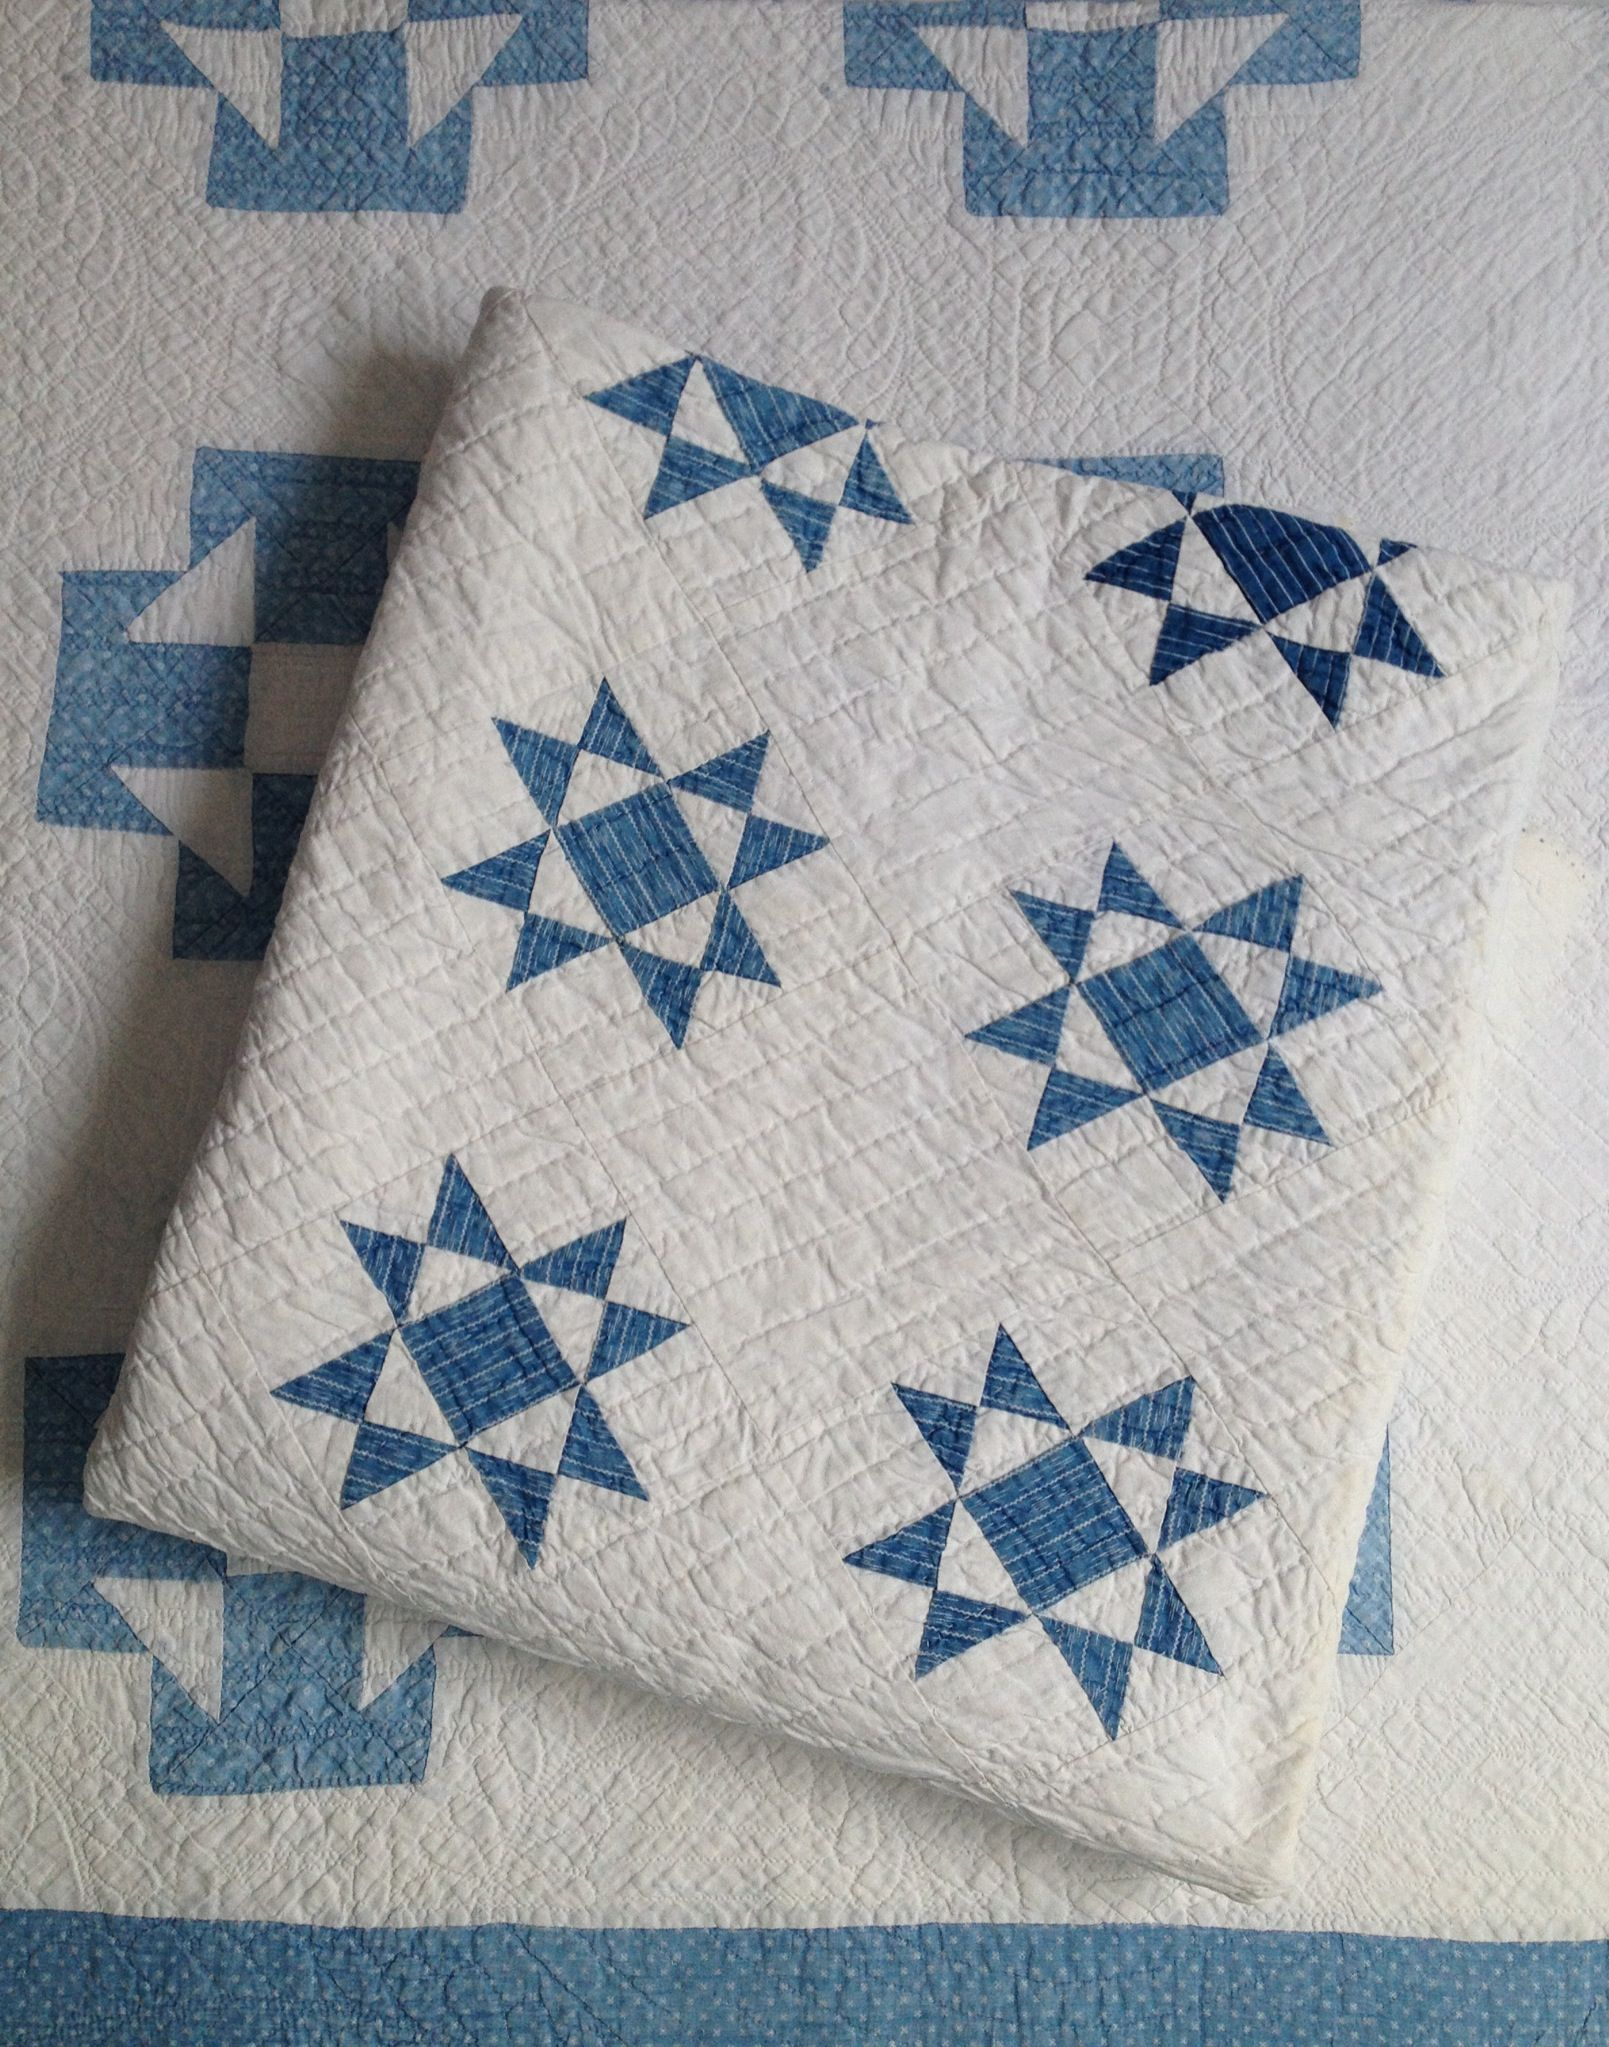 Blue and white quilts inspiration for something to do with some blue scraps i have